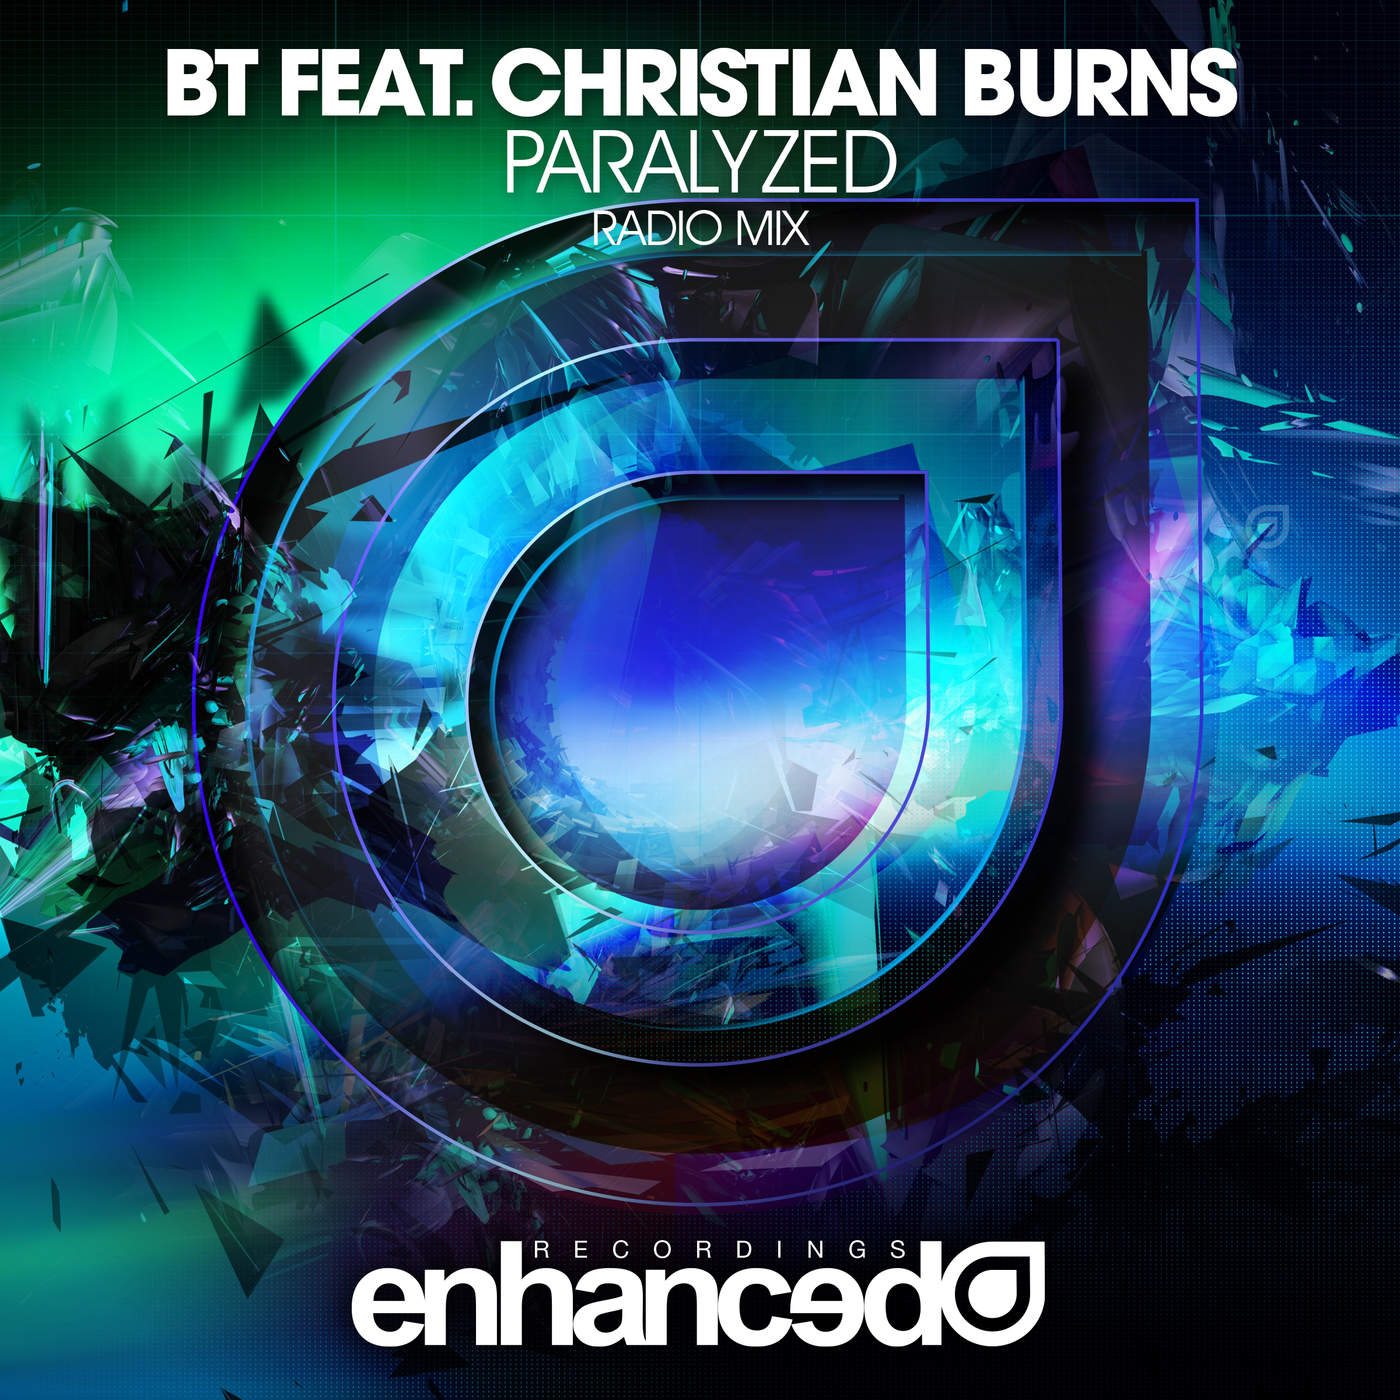 BT – Paralyzed (Radio Mix) [feat. Christian Burns] – Single [iTunes Plus AAC M4A] (2014)